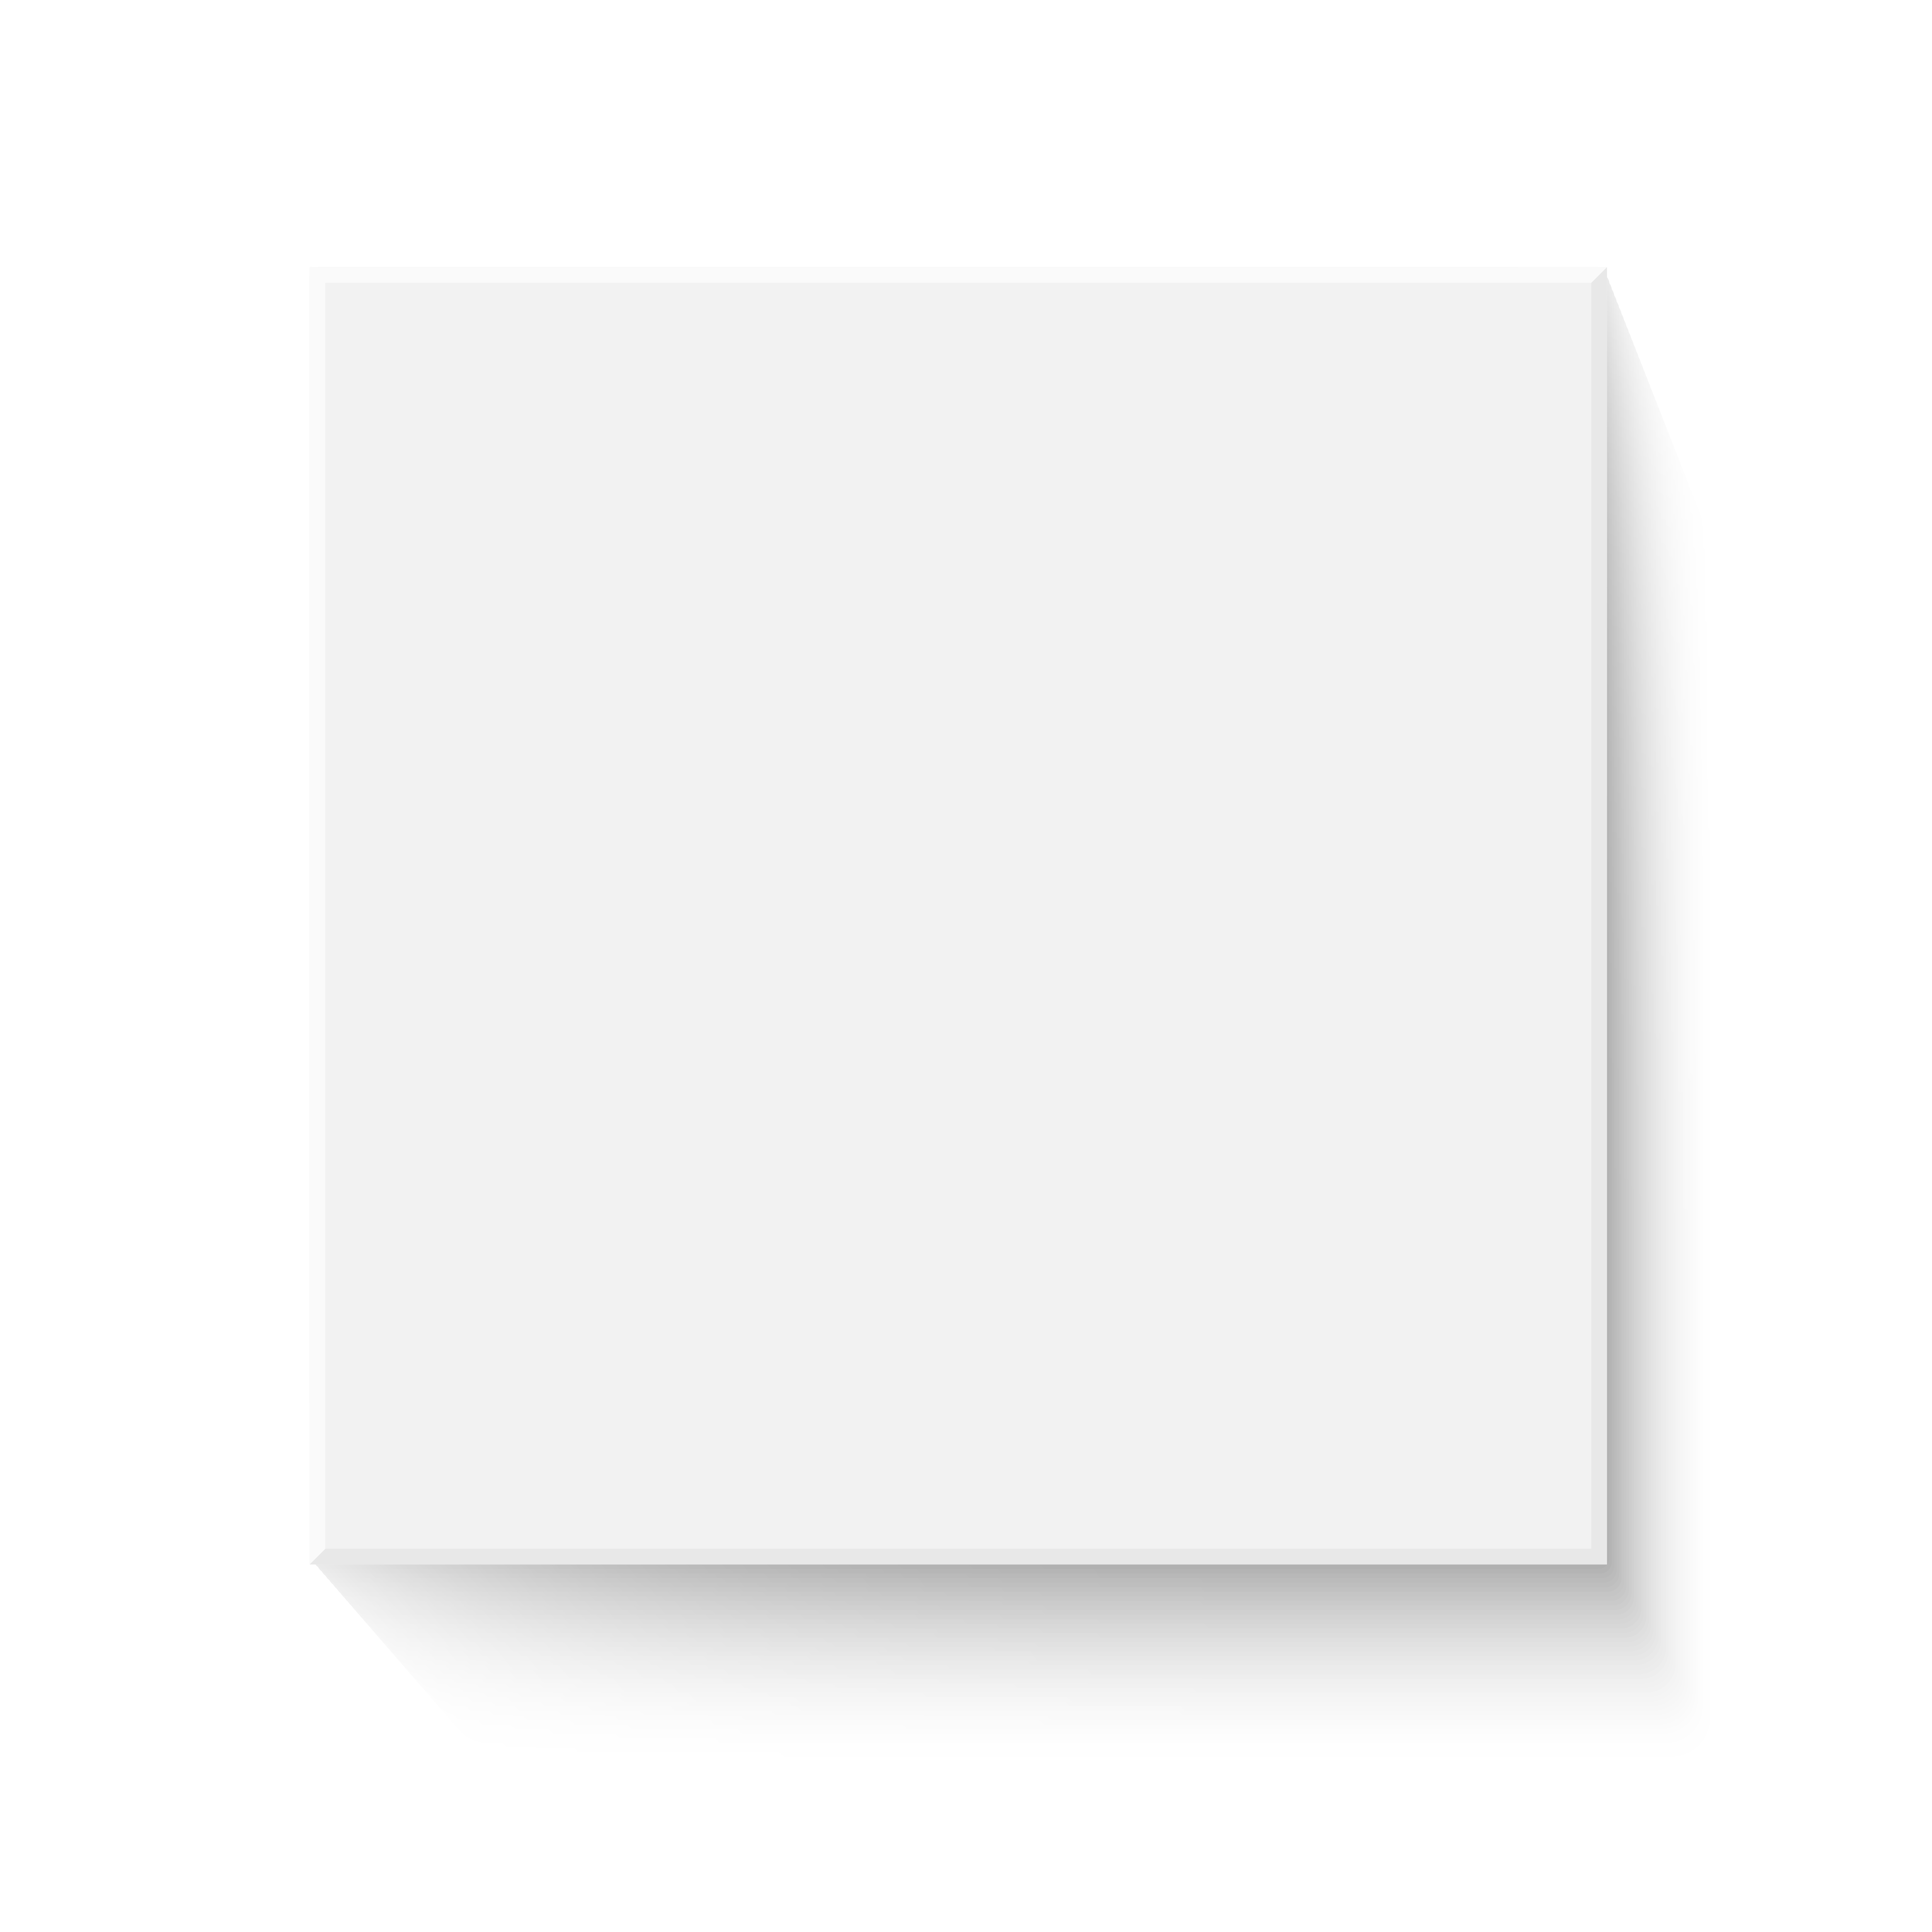 White box mockup. Blank box template with closed open.